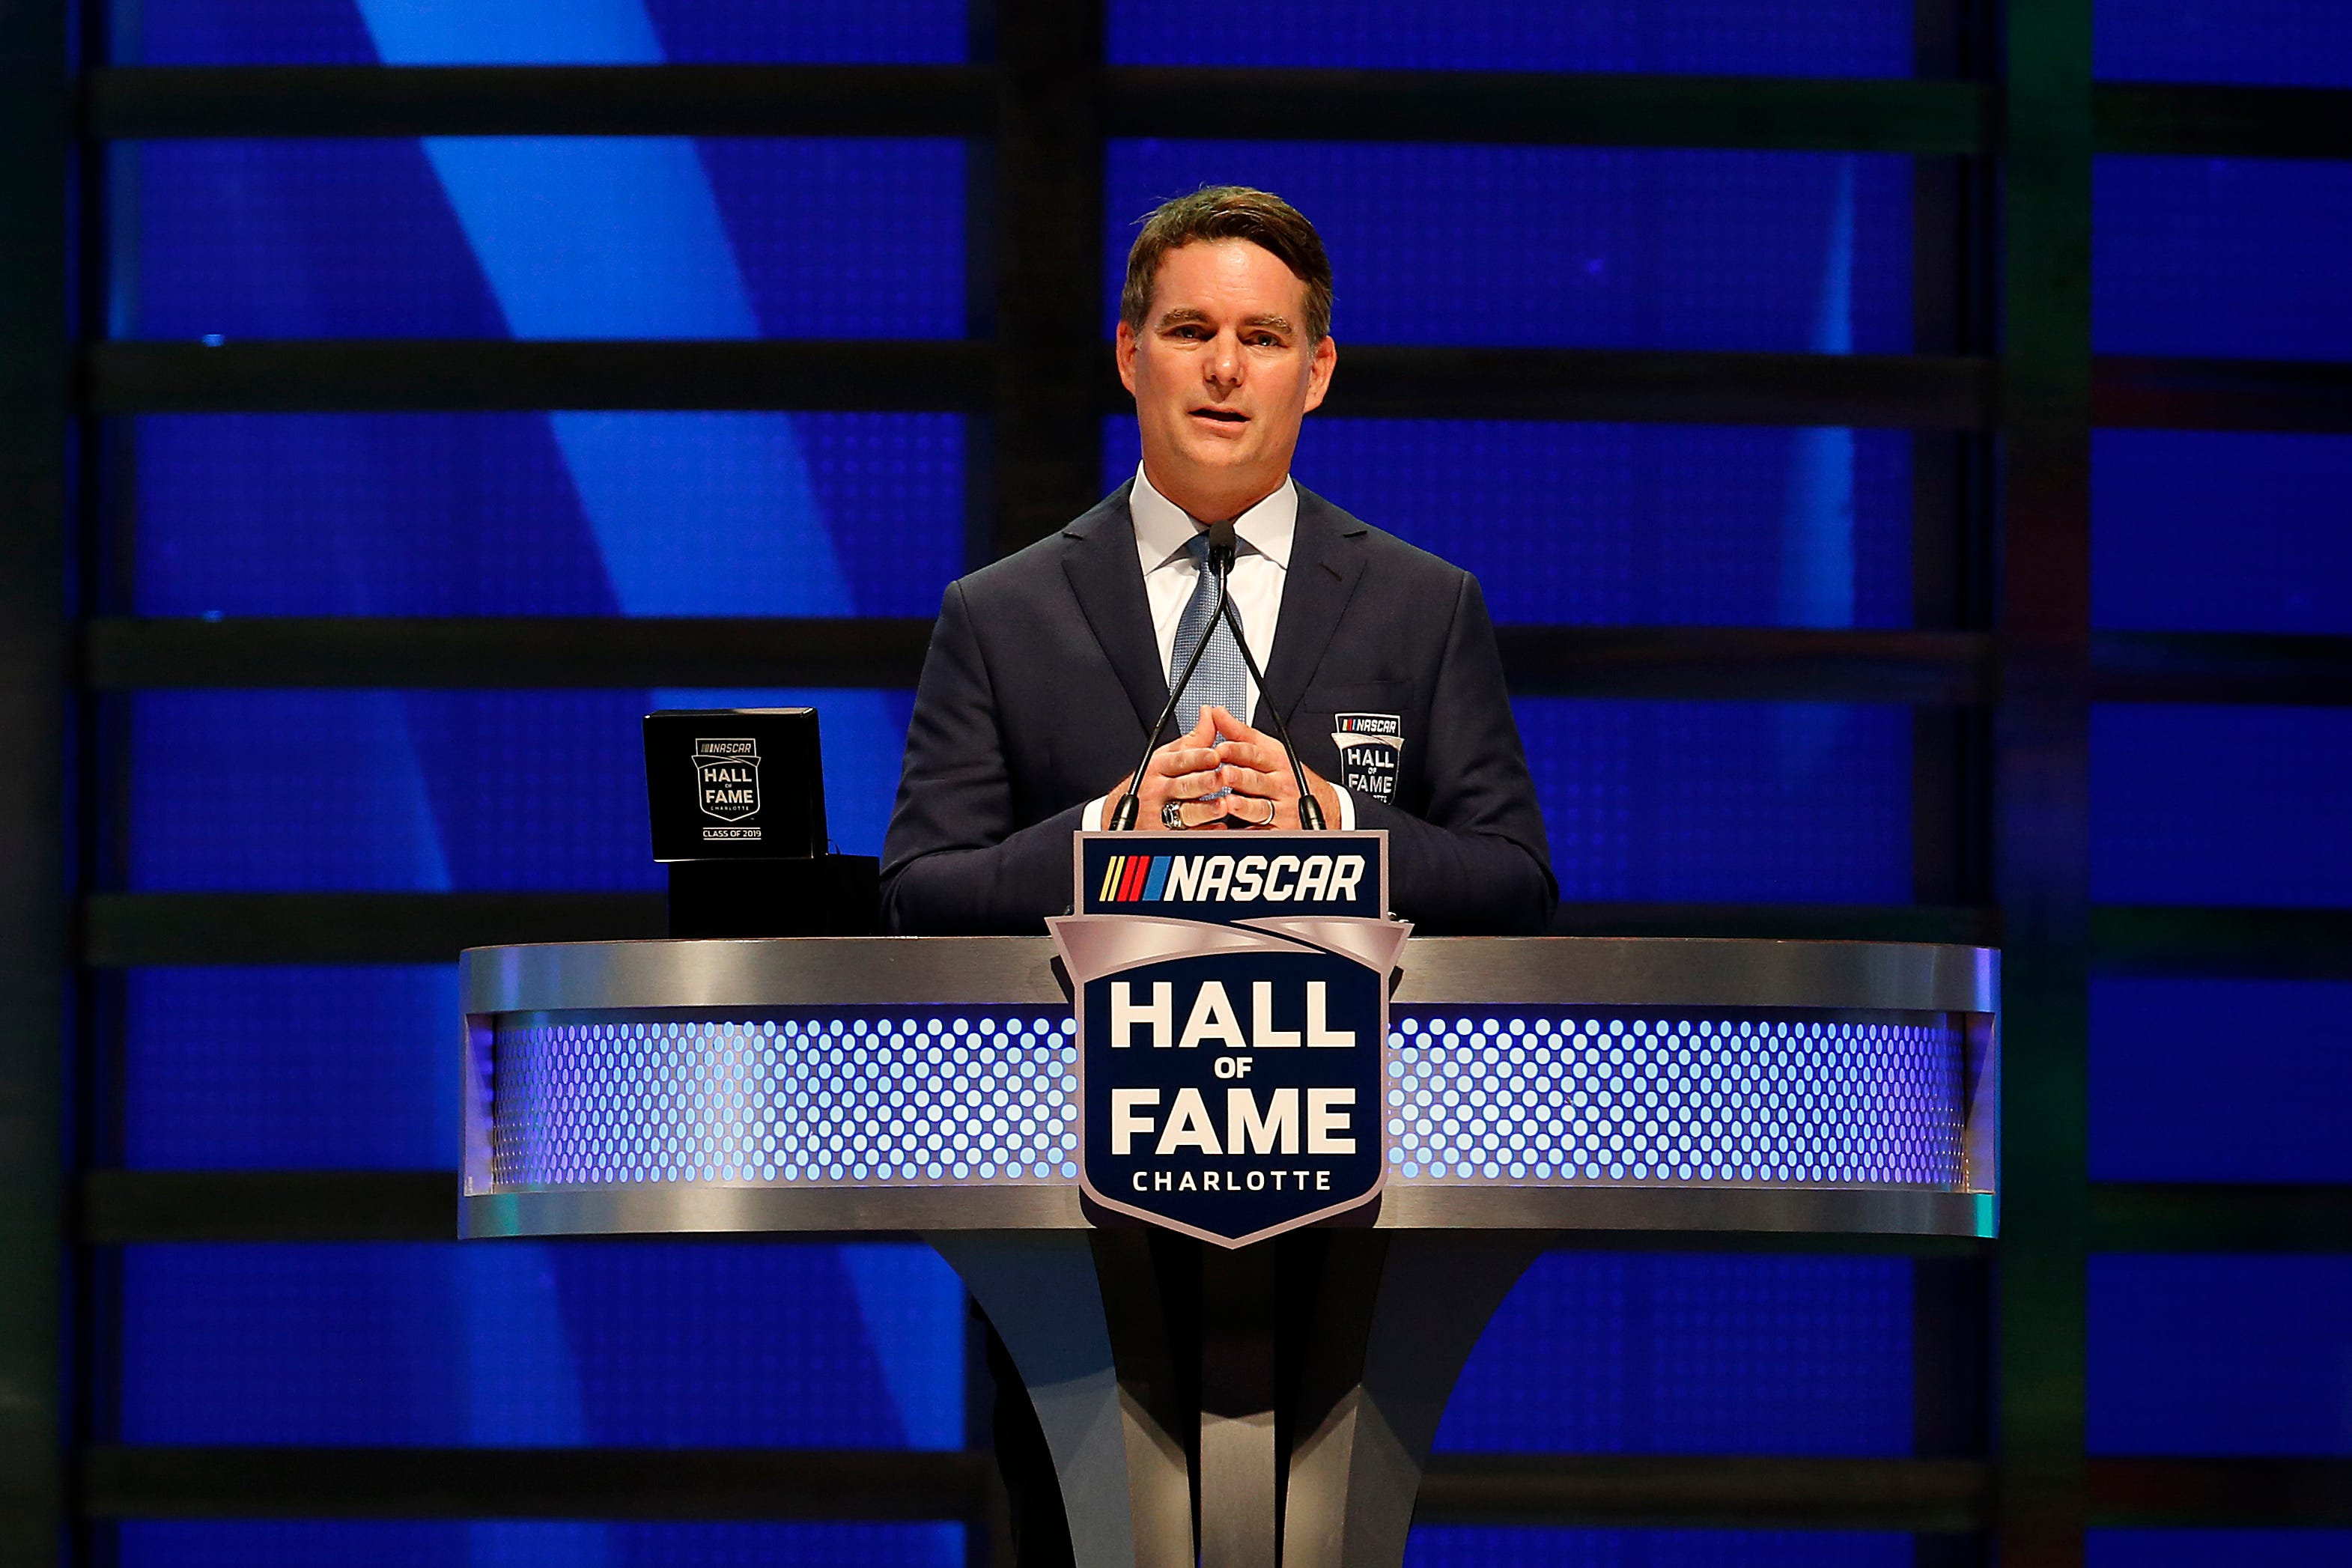 Jeff Gordon speaks on stage after being inducted into the NASCAR Hall of Fame.